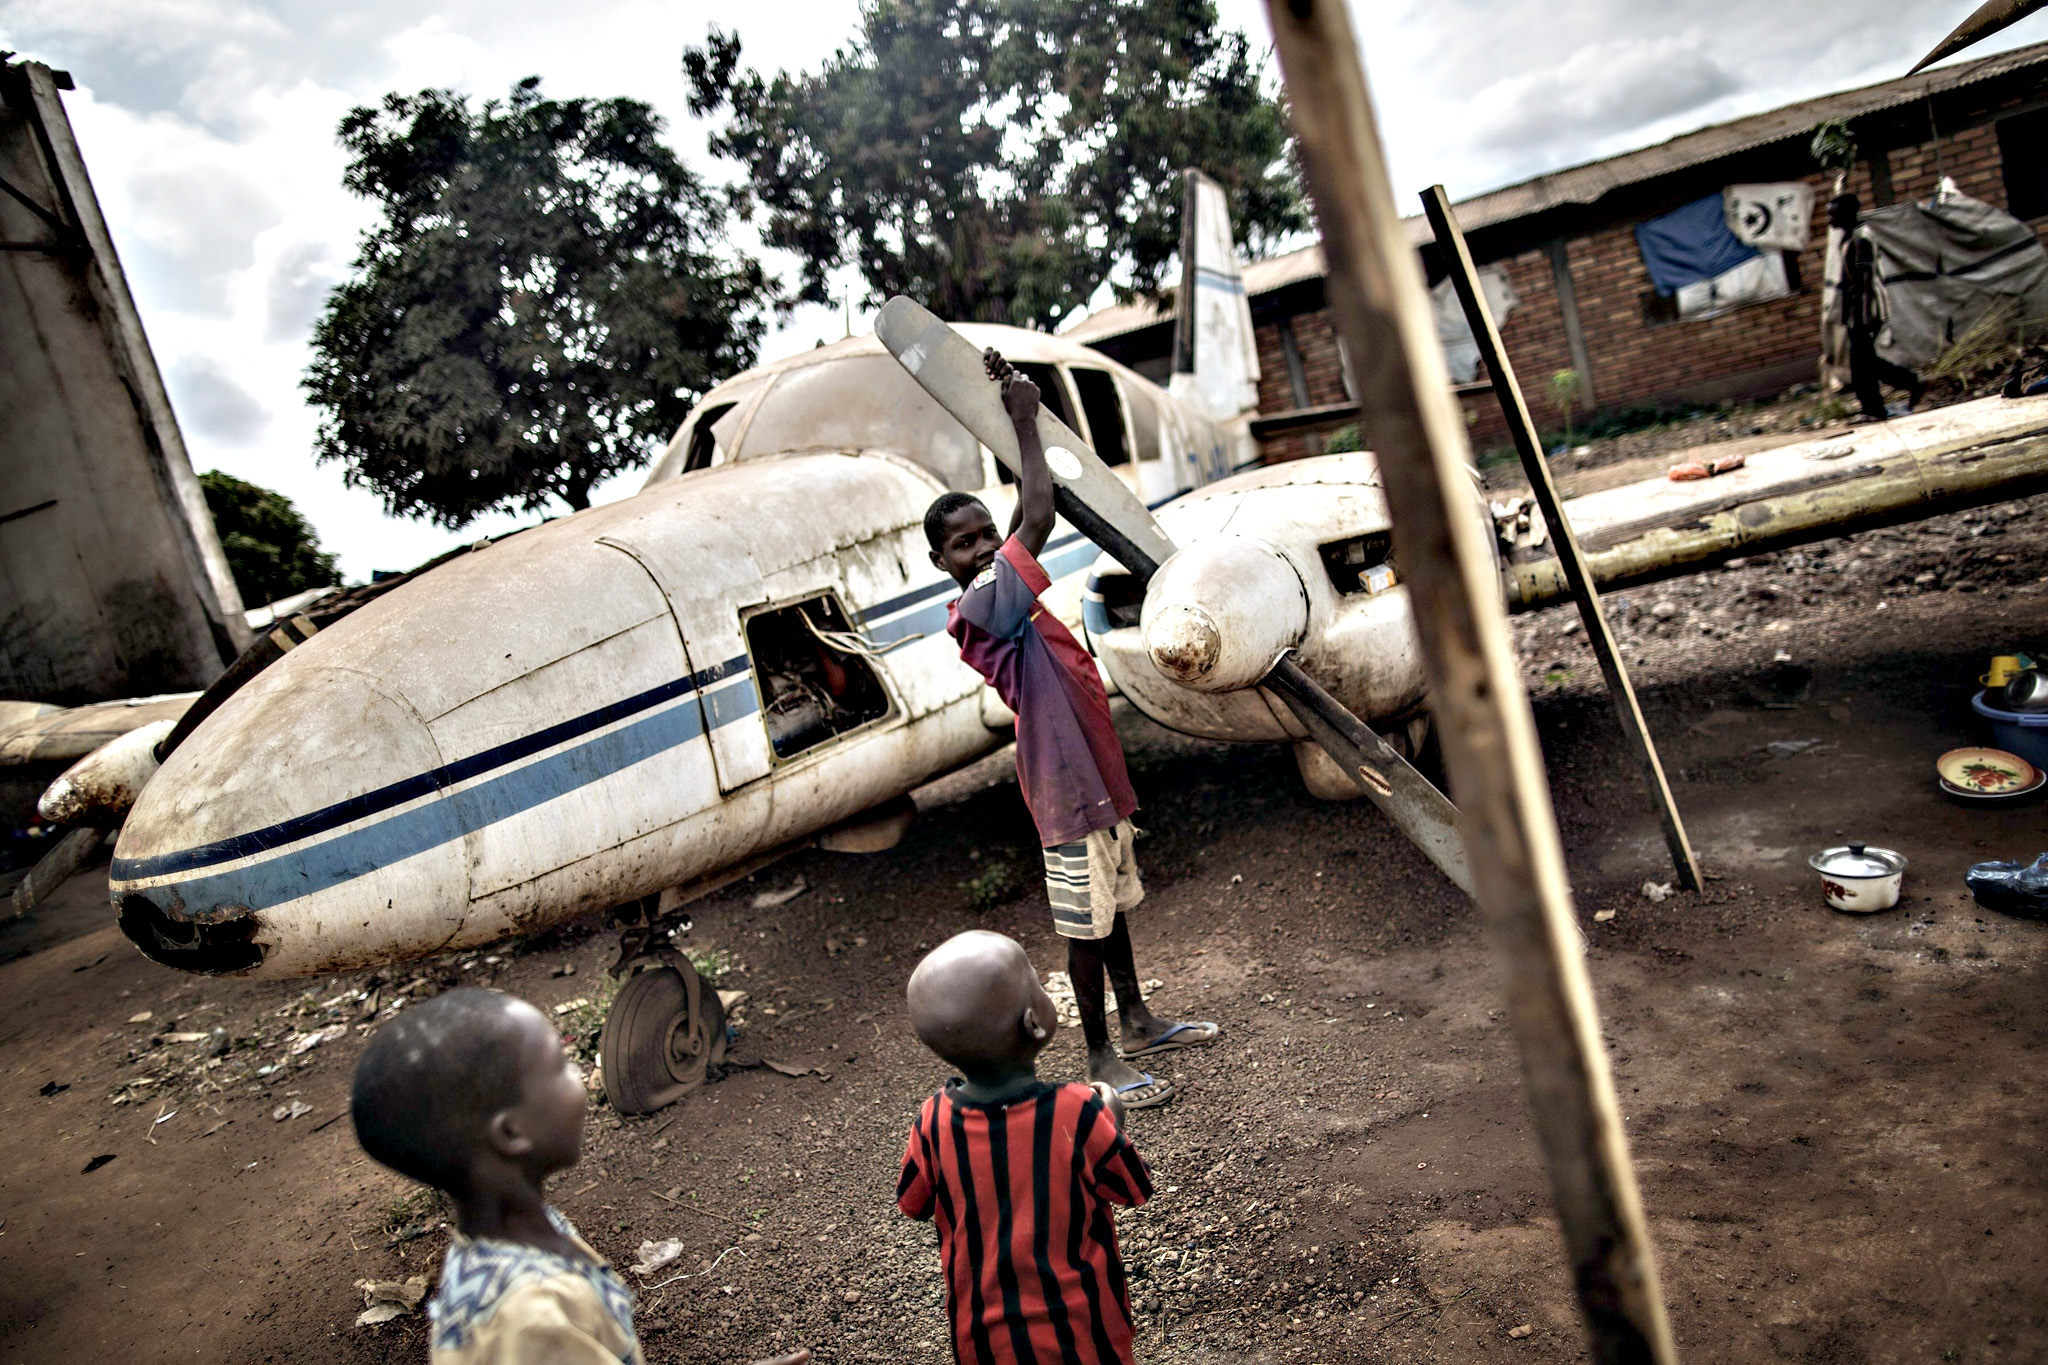 "Children play with the wreckage of a light plane at the Mpoko Internally Displaced People (IDP) camp in Bangui on Thursday, ahead of a historical visit by the pope. Pope Francis held his first open-air mass in Africa on November 26 with huge crowds calling heavy rains ""God's blessing"" as they sung and danced in the Kenyan capital. The 78-year-old pontiff, the third pope to visit the continent, is also scheduled to visit Uganda and the troubled Central African Republic (CAR) on a six-day trip."